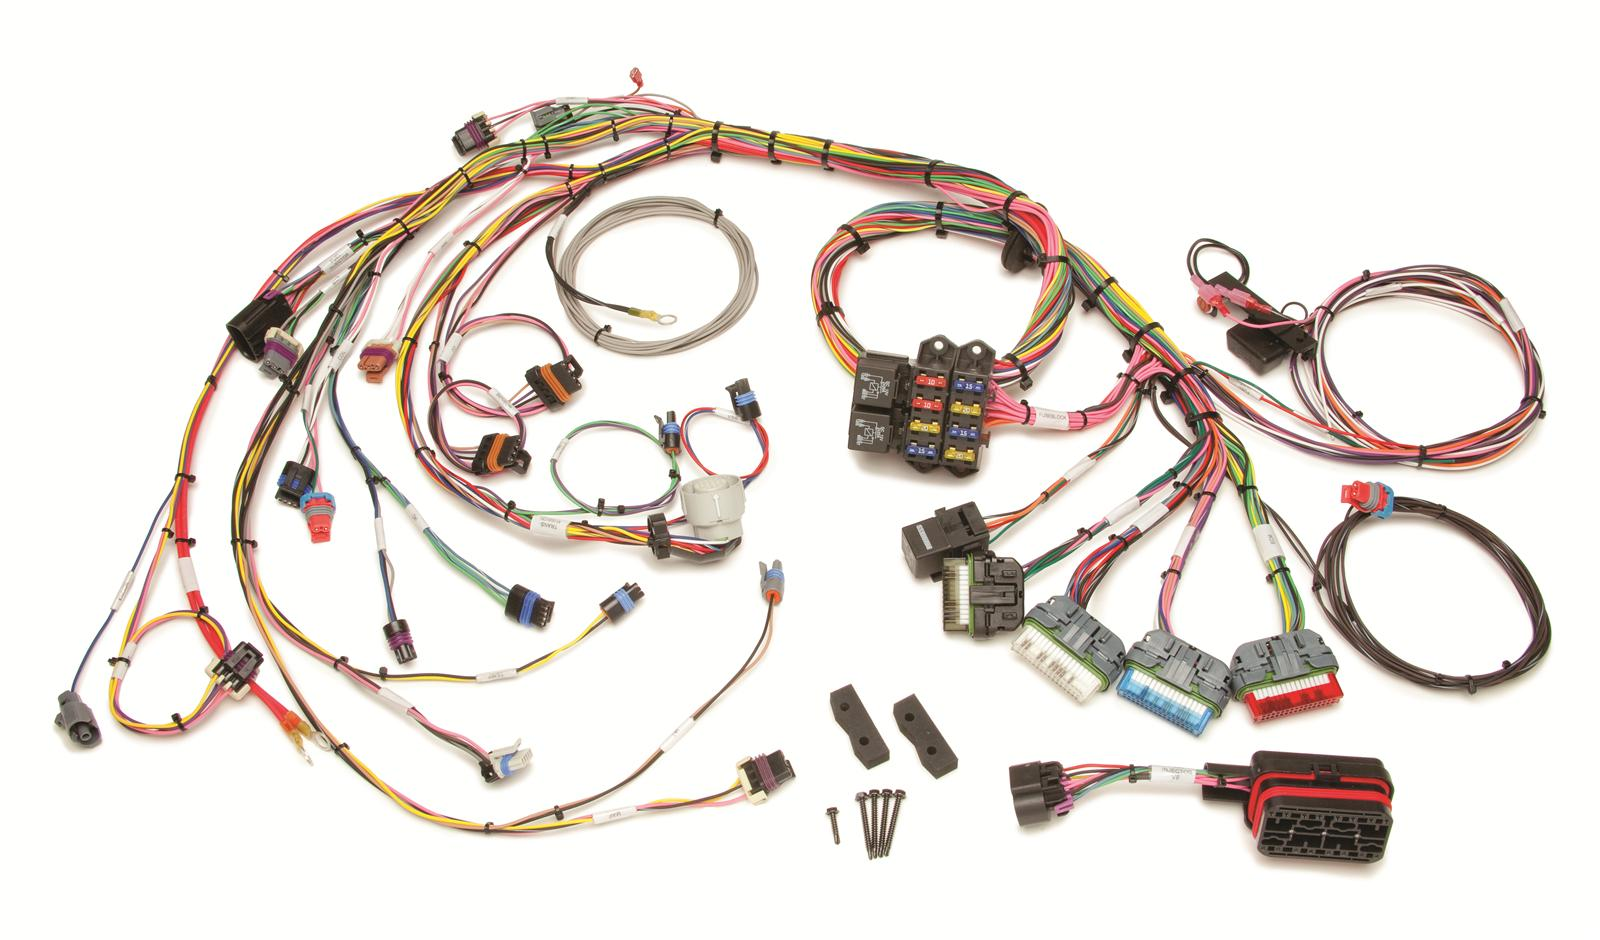 Painless Wiring Manual 90534 Electrical Diagrams Installation All About Wire Harness Instructions